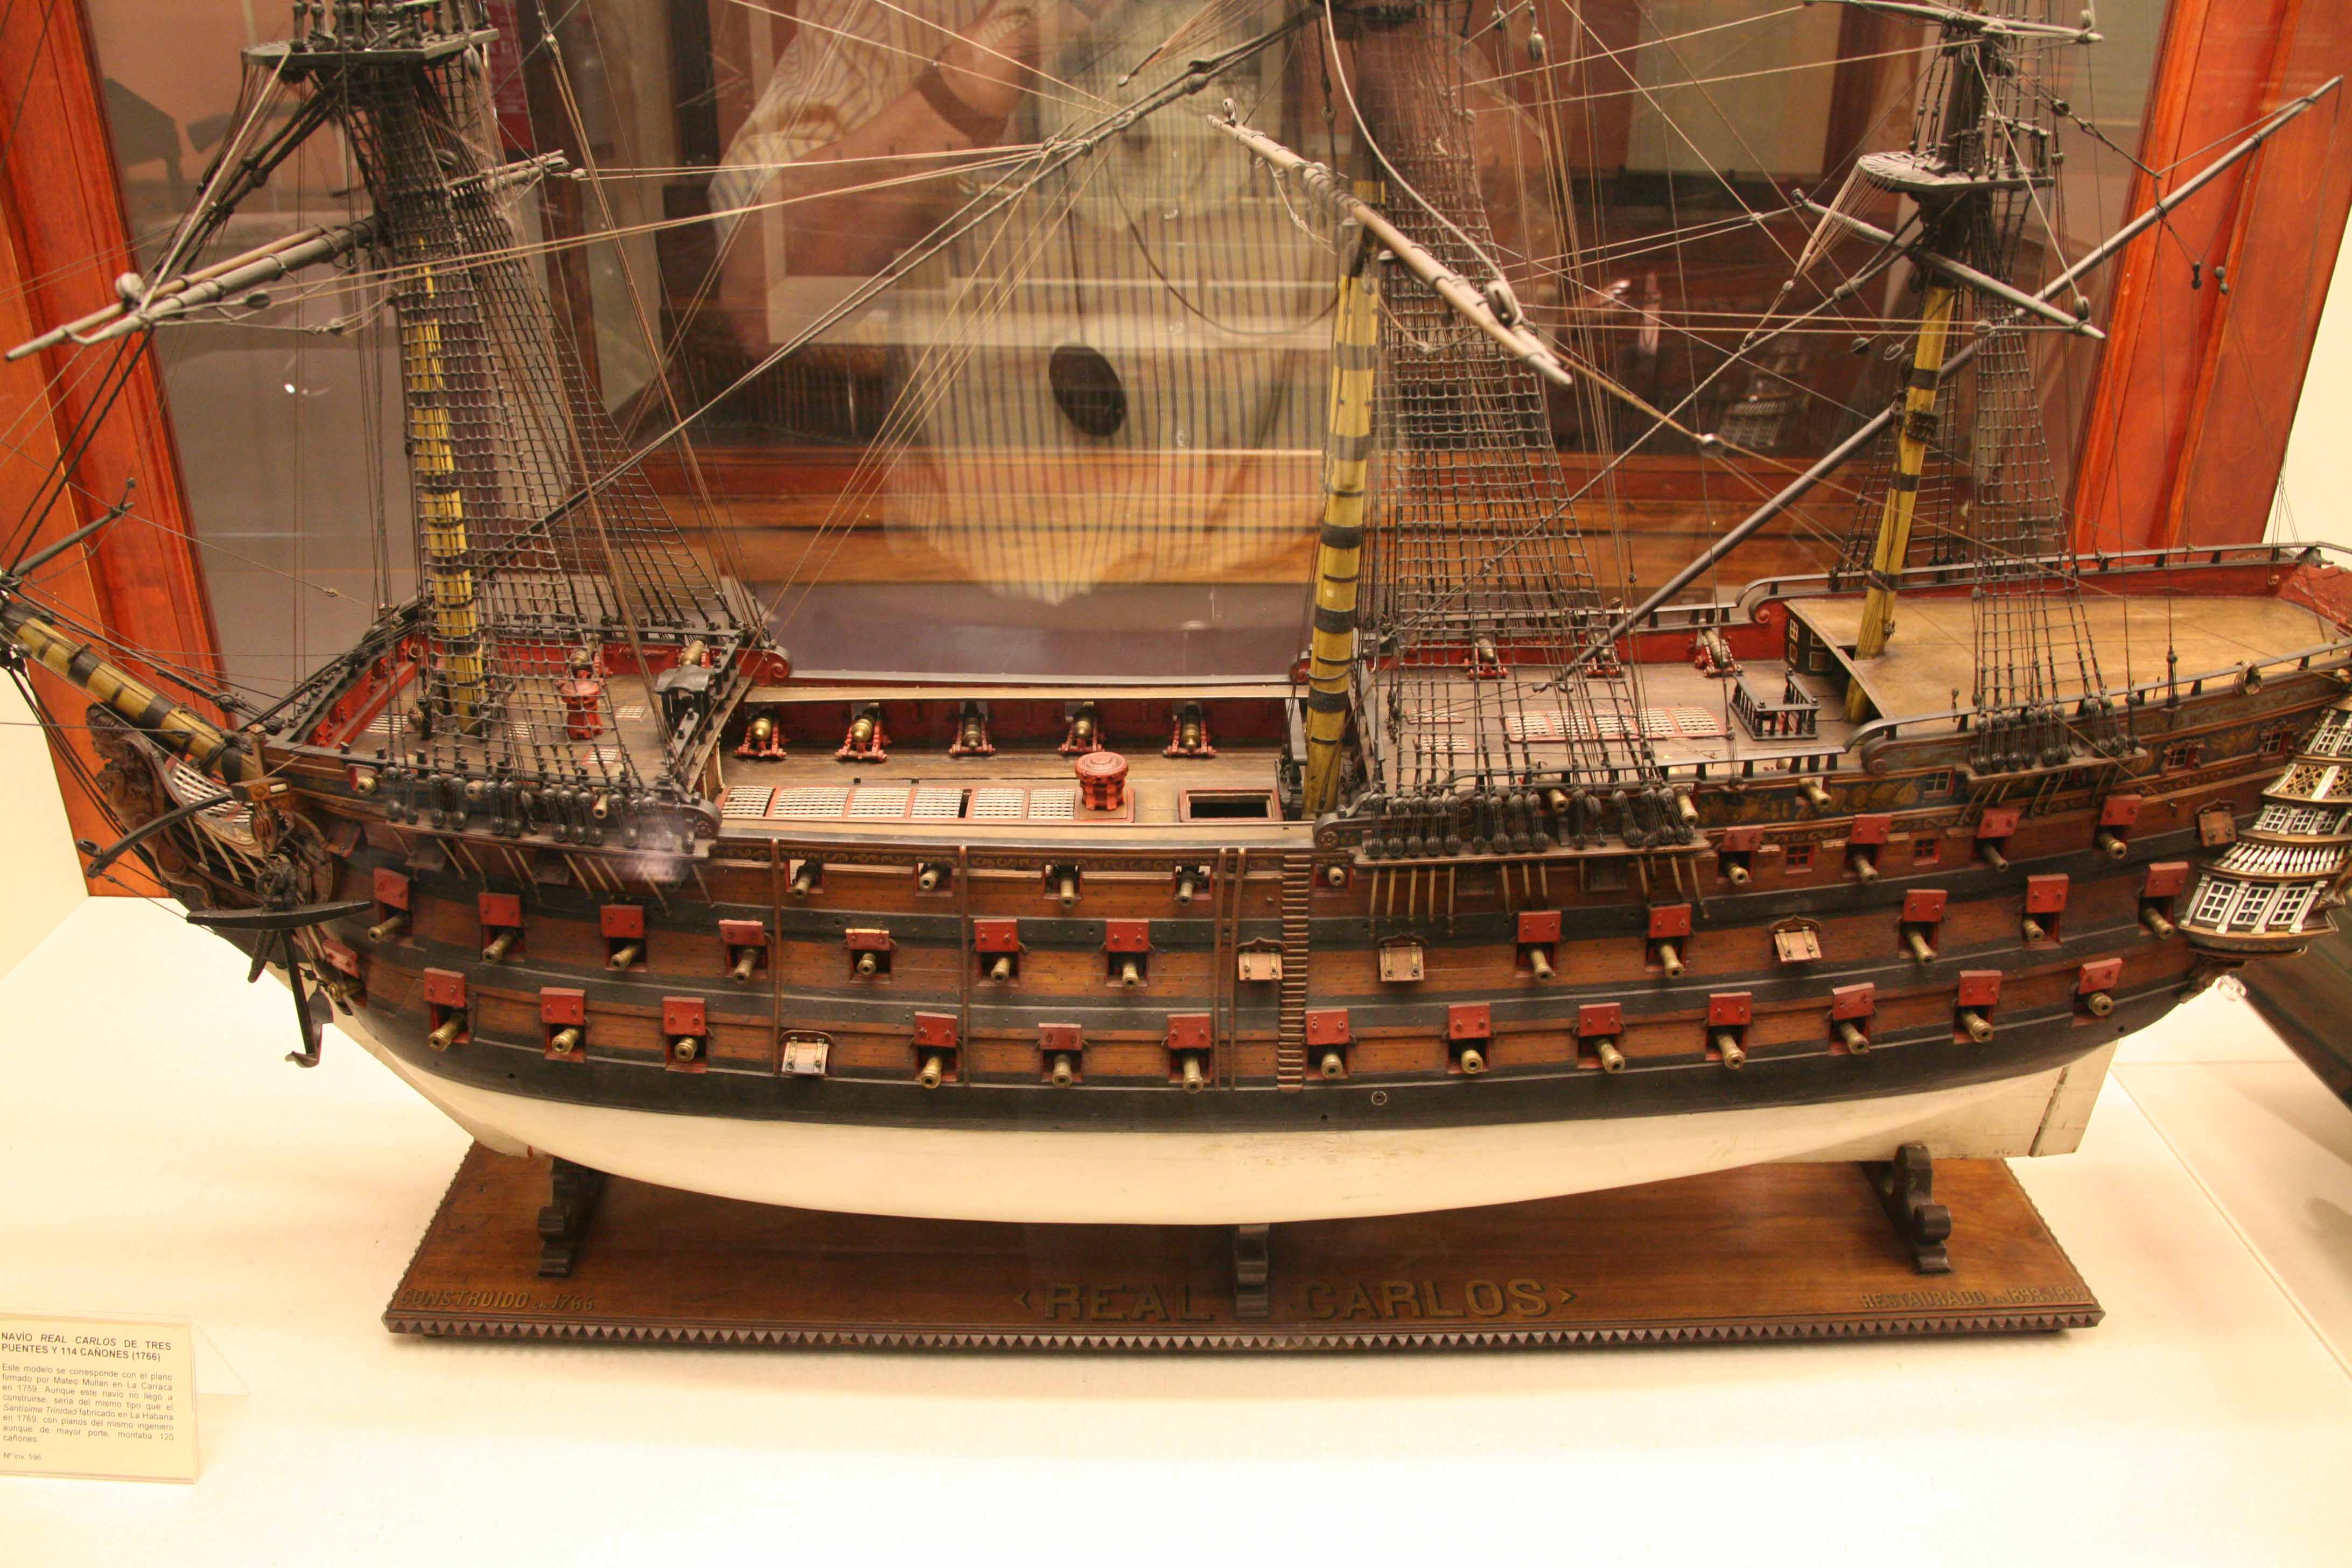 Photos model of the Real Carlos, 1766, Museo Naval, Madrid